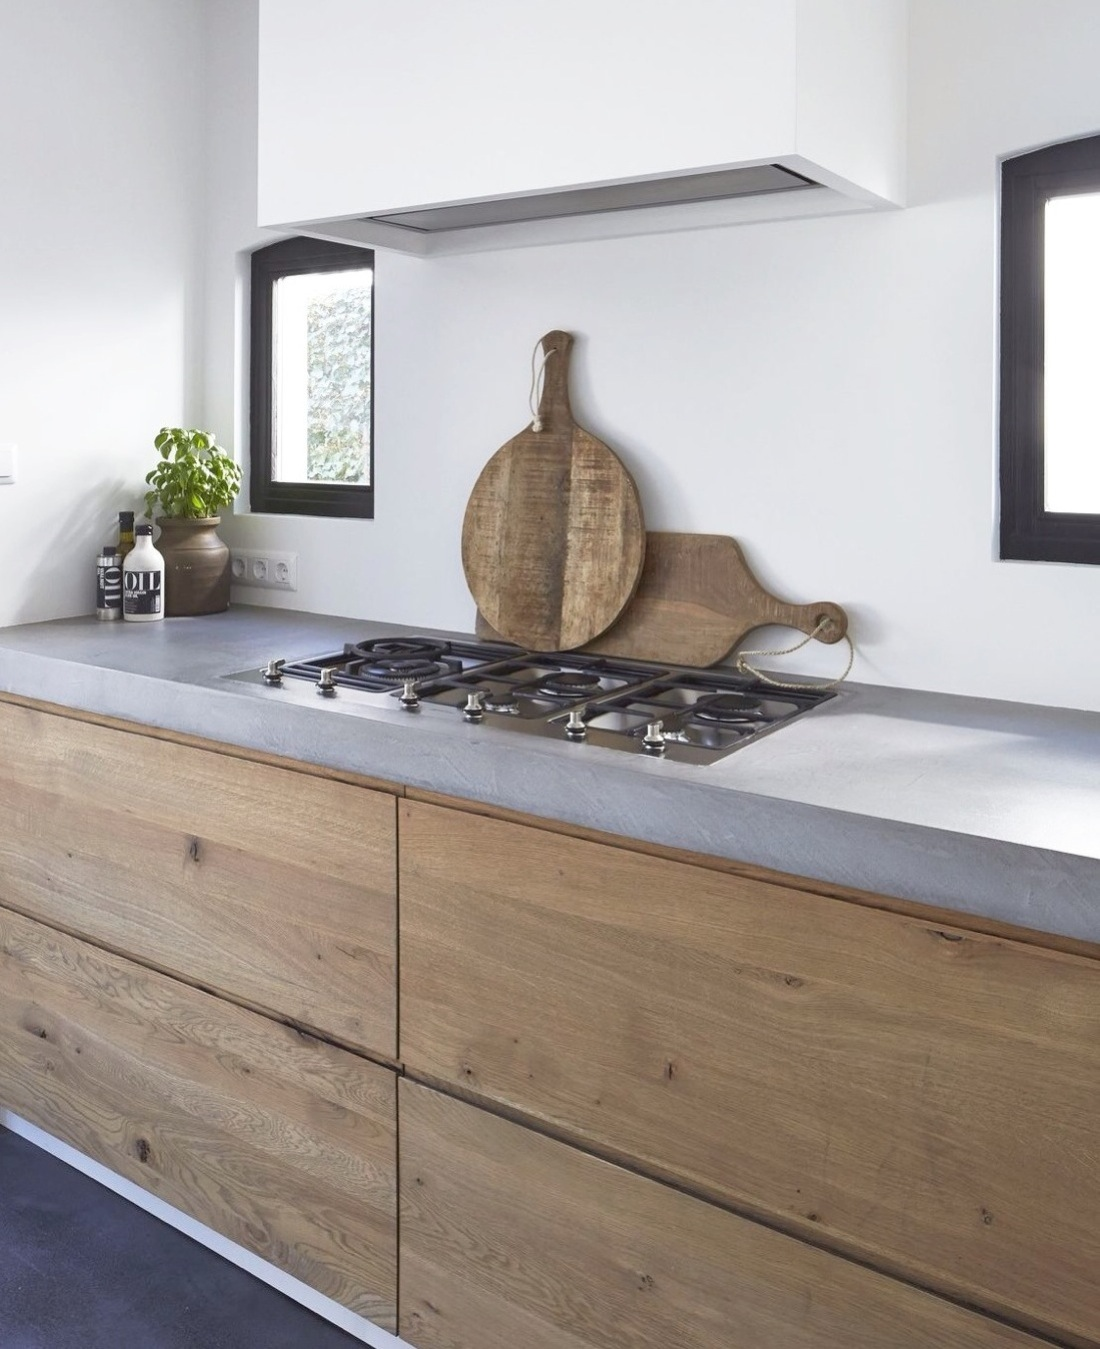 recycled-timber-drawers-concrete-kitchen-counter